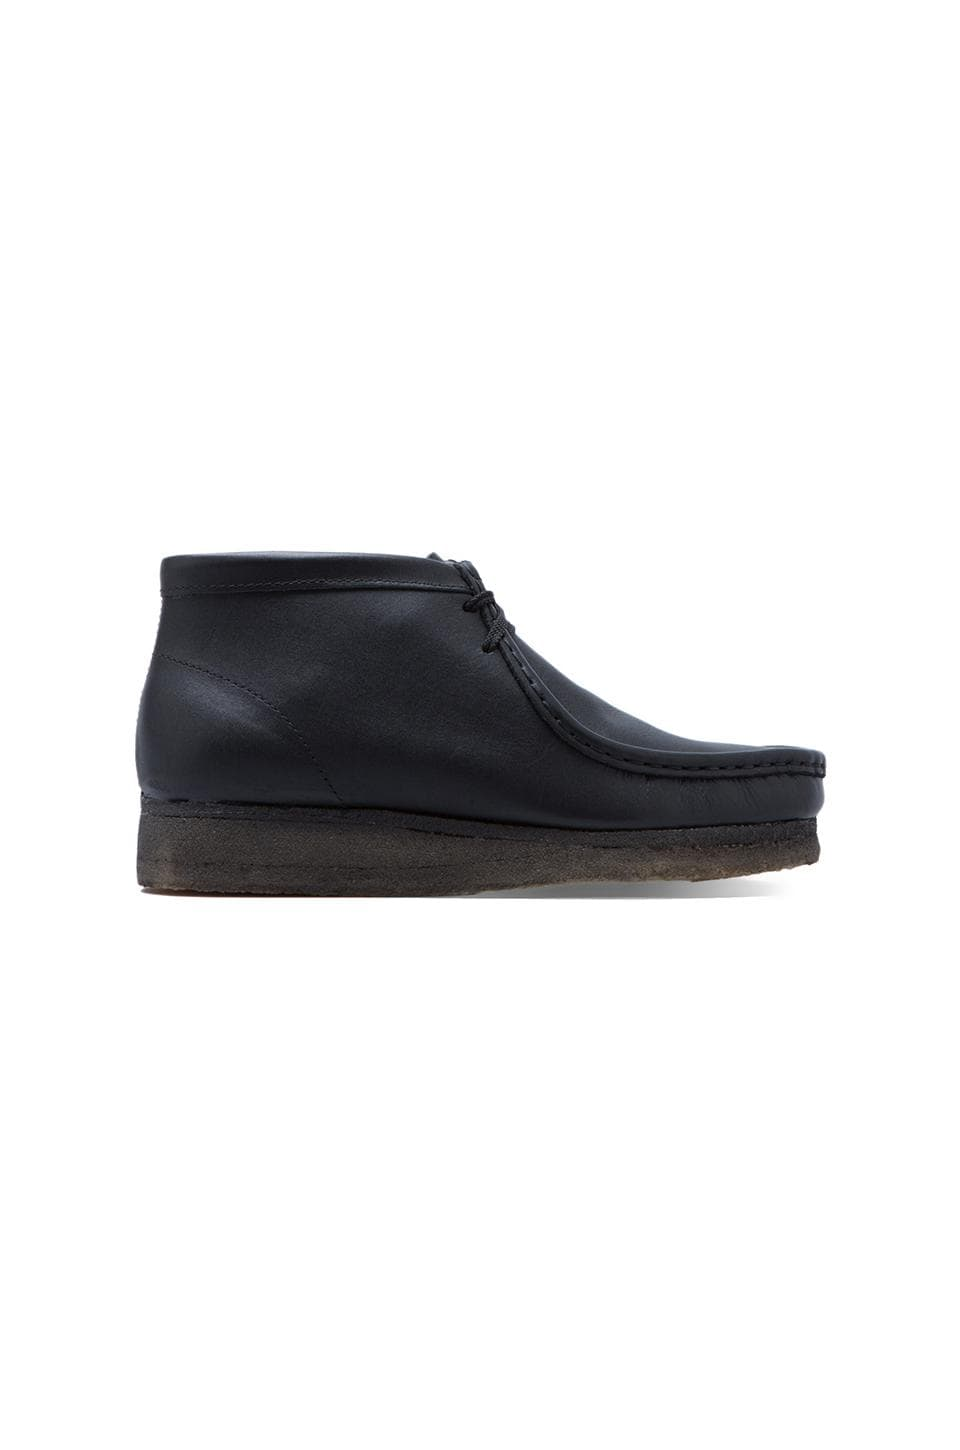 Clarks Originals Wallabee Boot en Cuir Noir